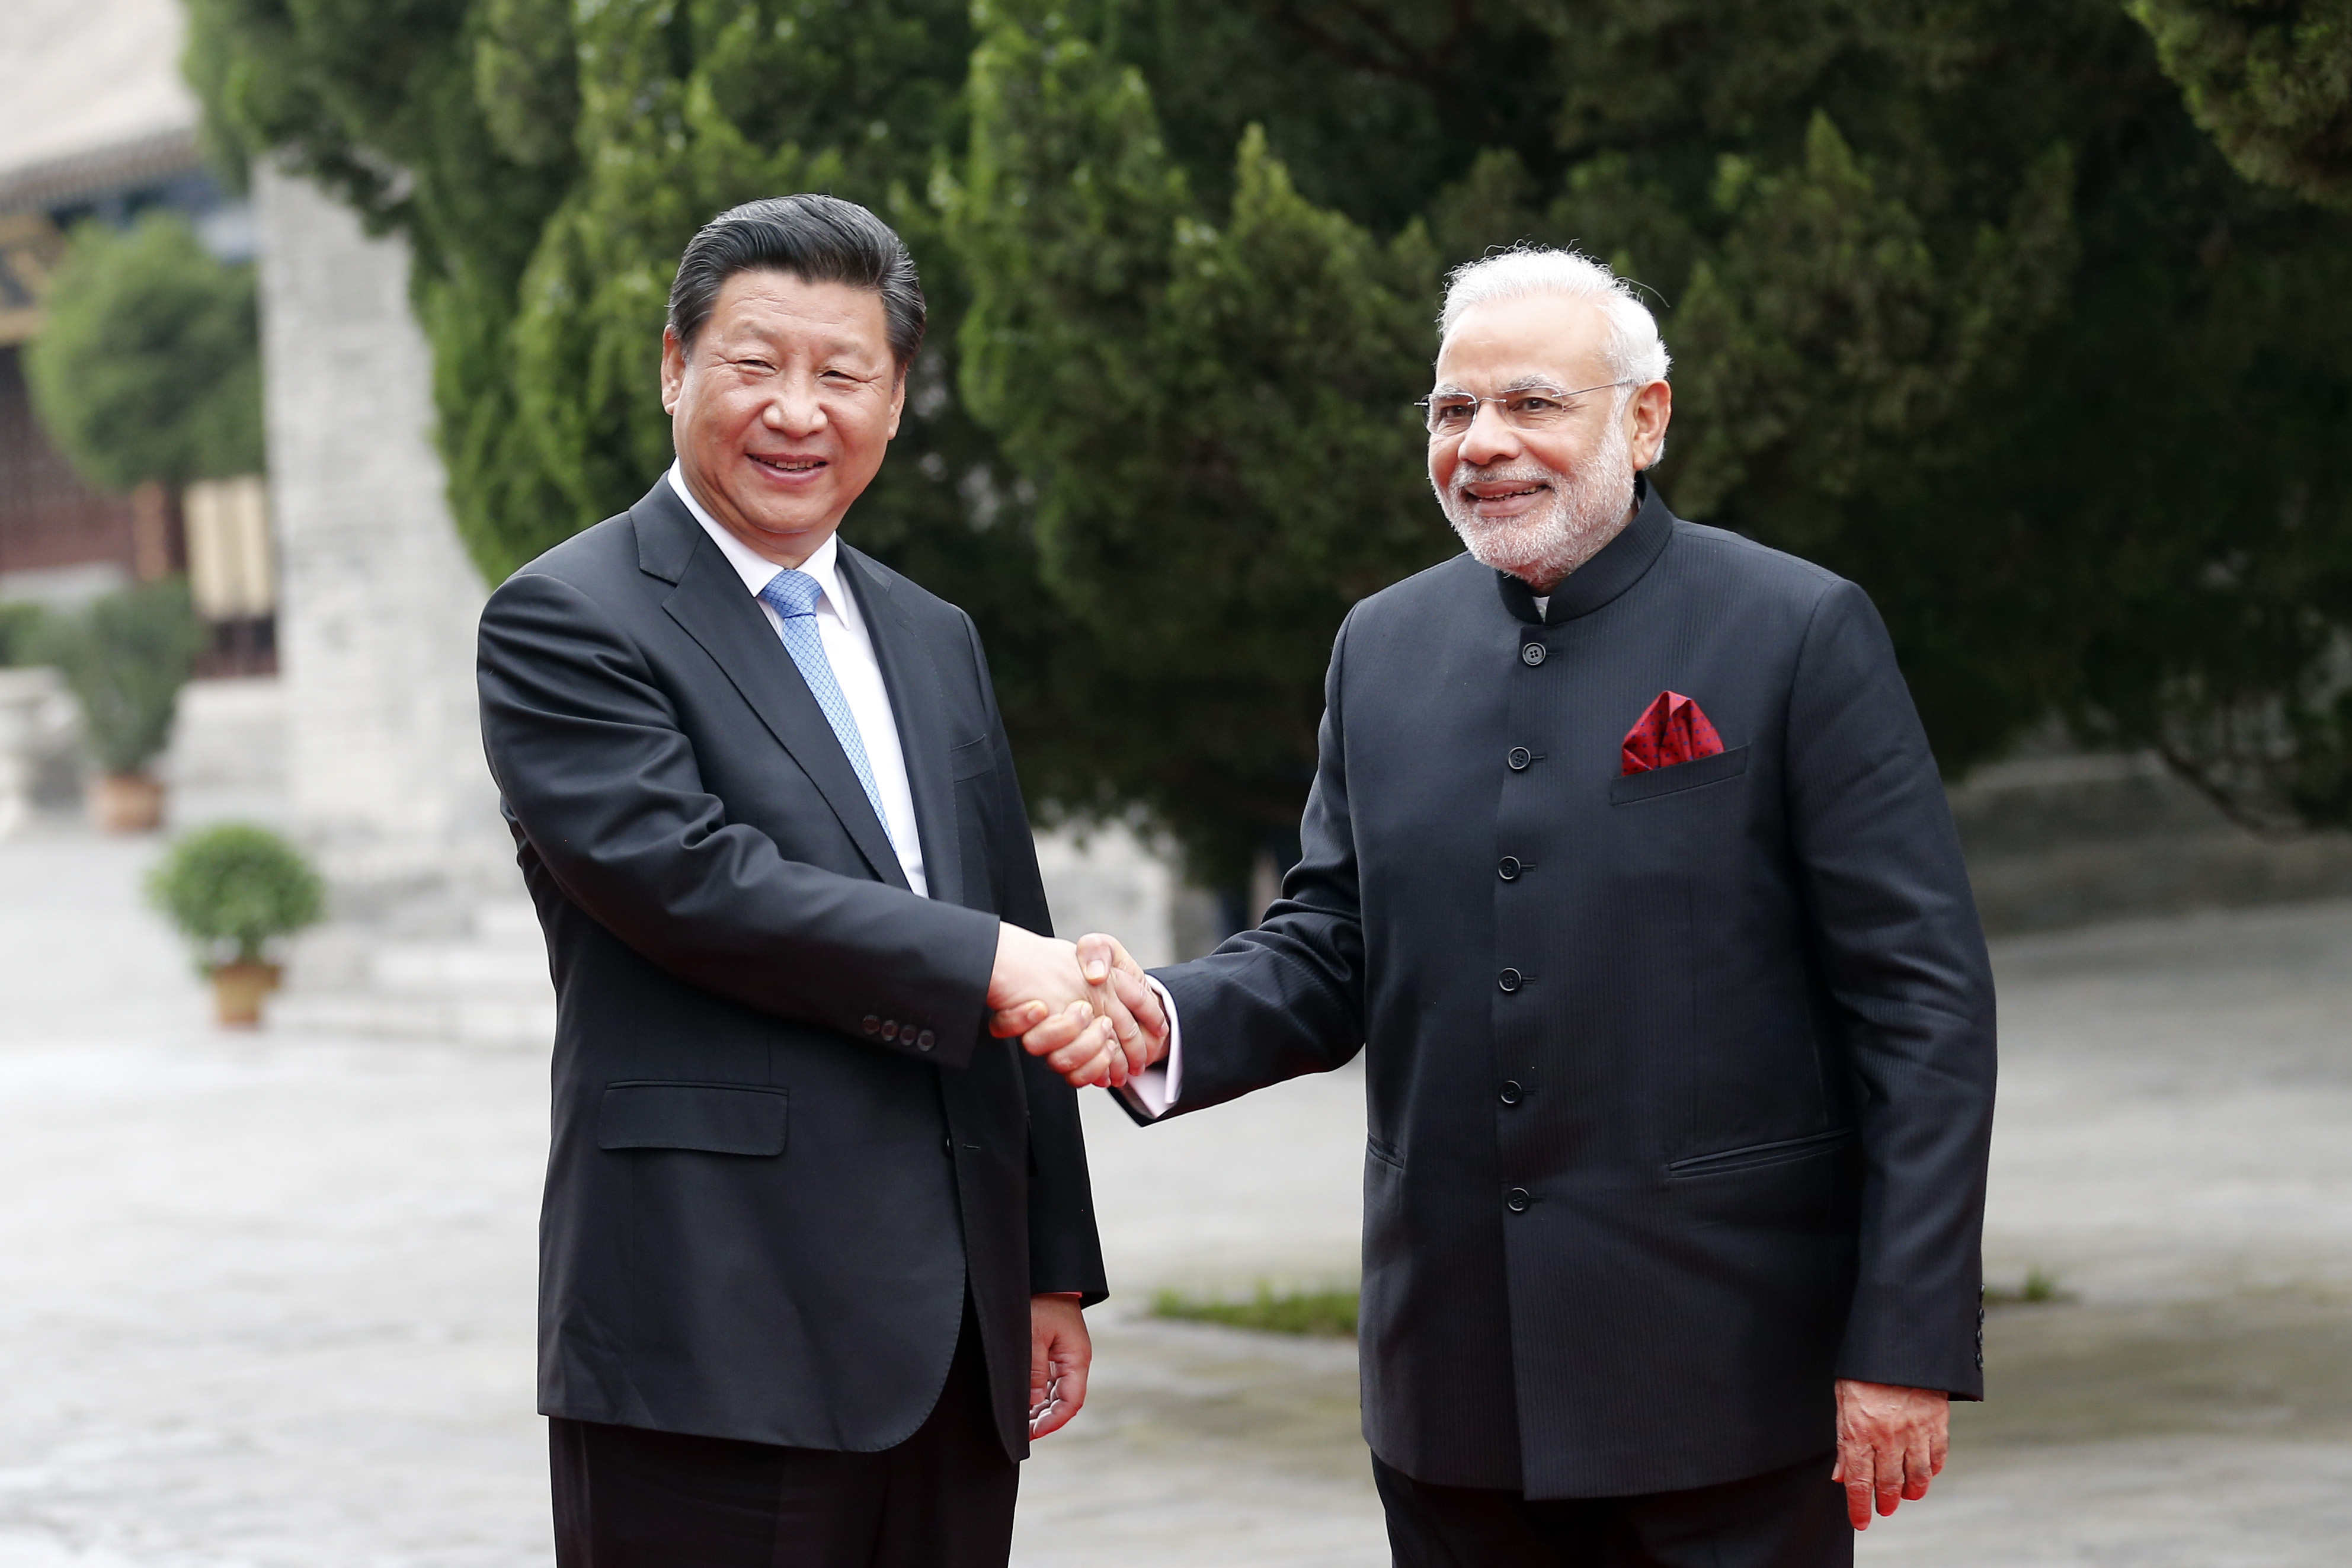 Chinese President Xi Jinping (L) and Indian Prime Minister Narendra Modi during their visit to Daci'en Temple in Xi'an, China on May 14, 2015.